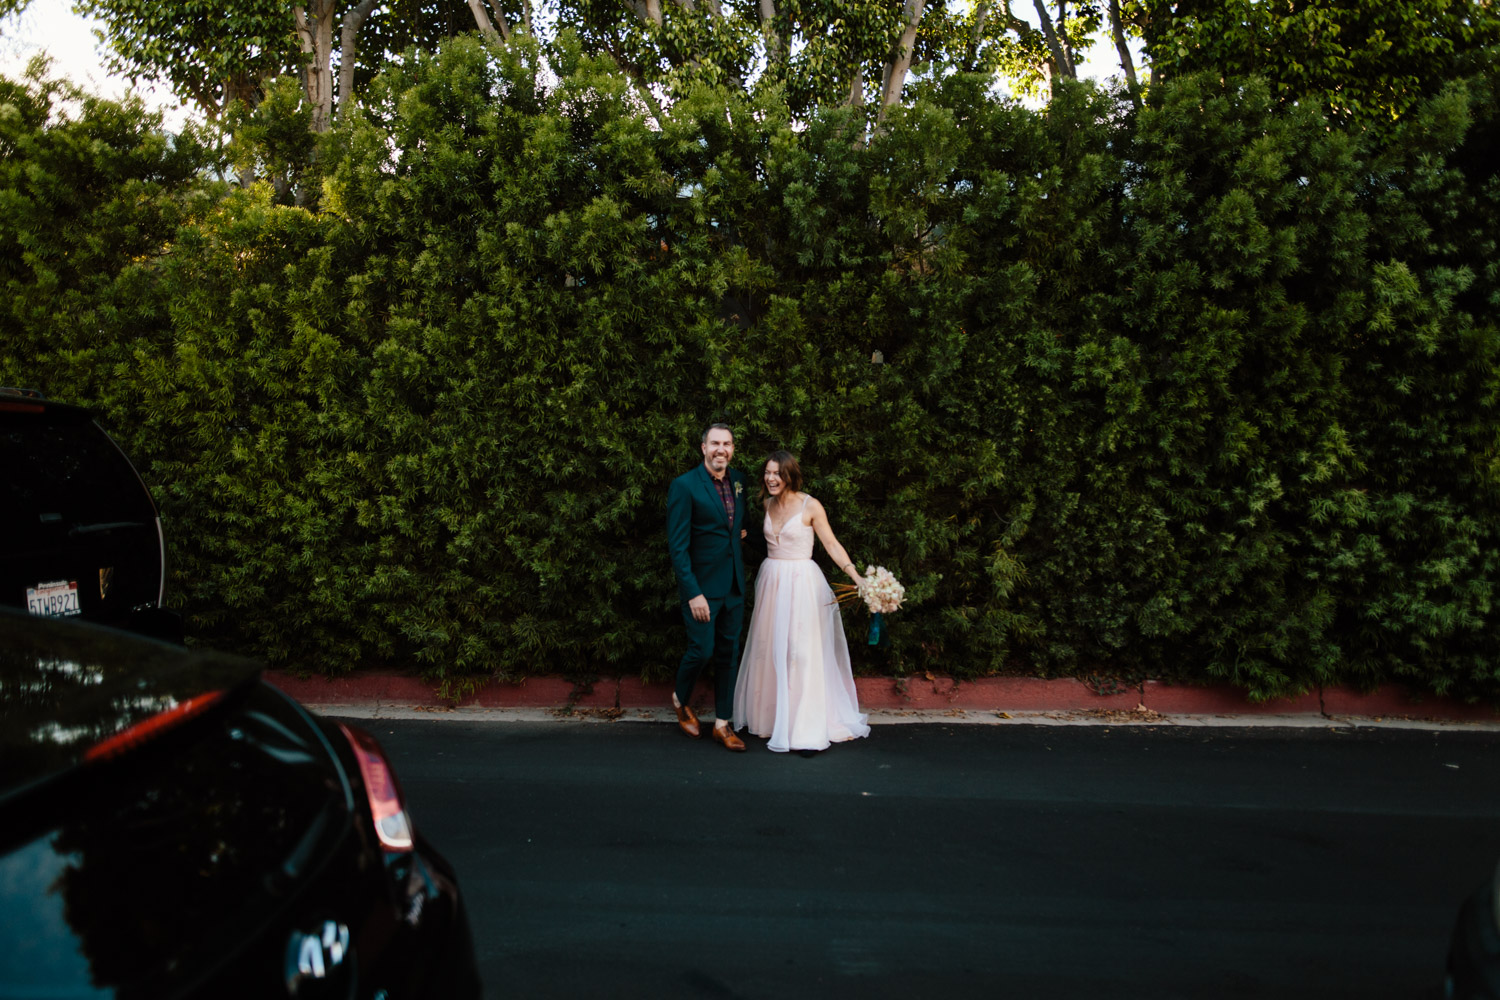 Riverside County Wedding Photographer, Five Crowns - The Gathering Season x weareleoandkat 066.JPG